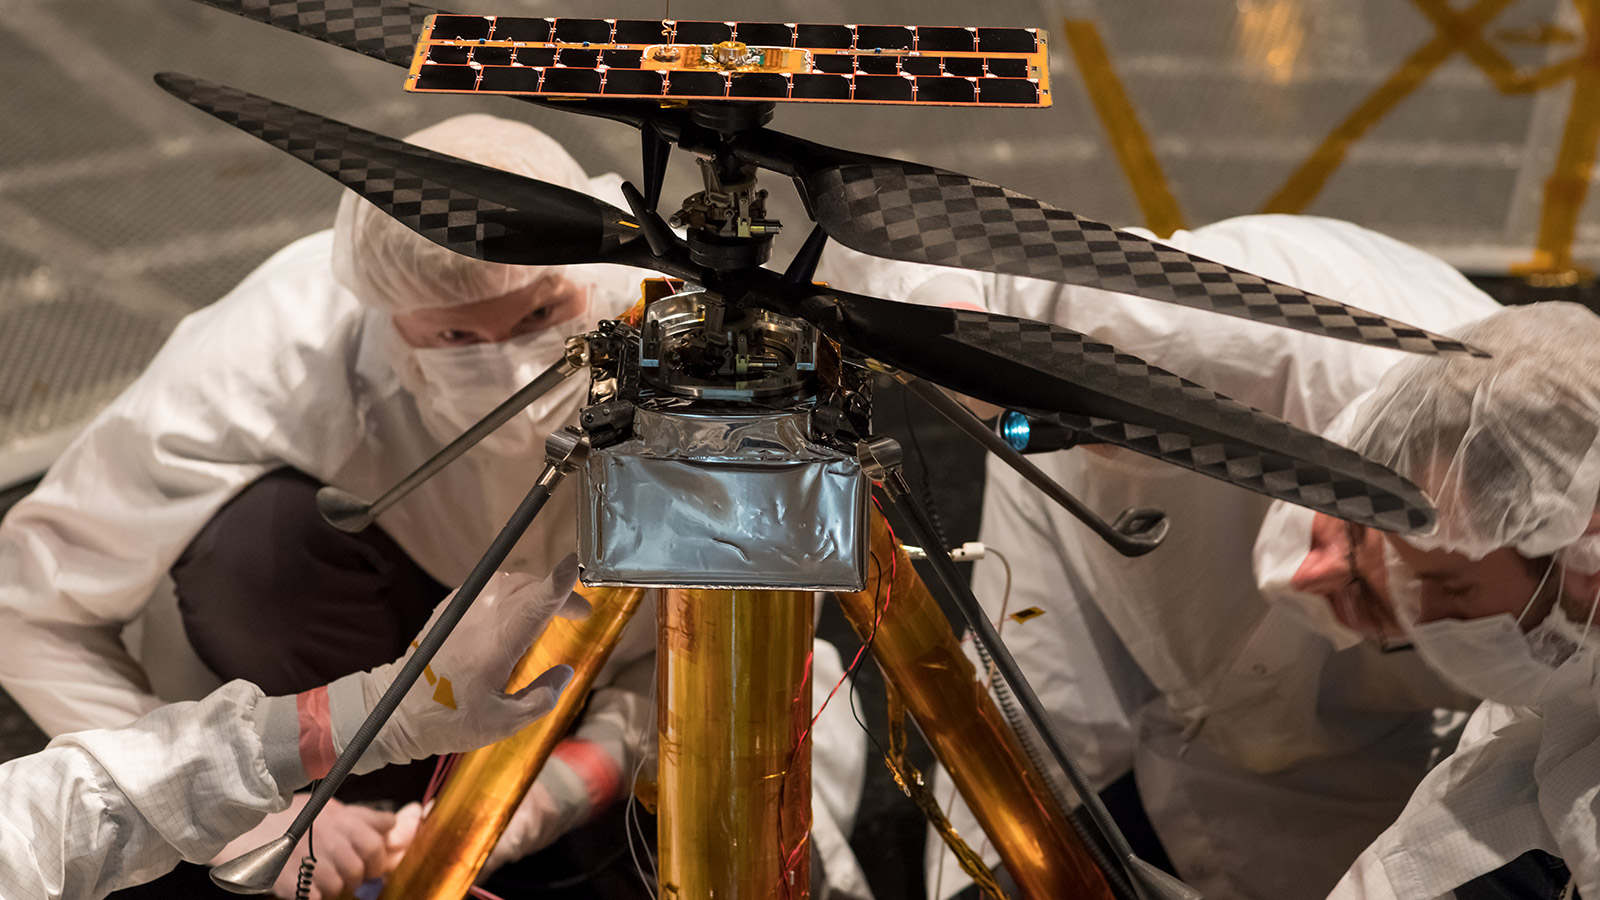 NASA's Mars Helicopter Completes Flight Tests | NASA